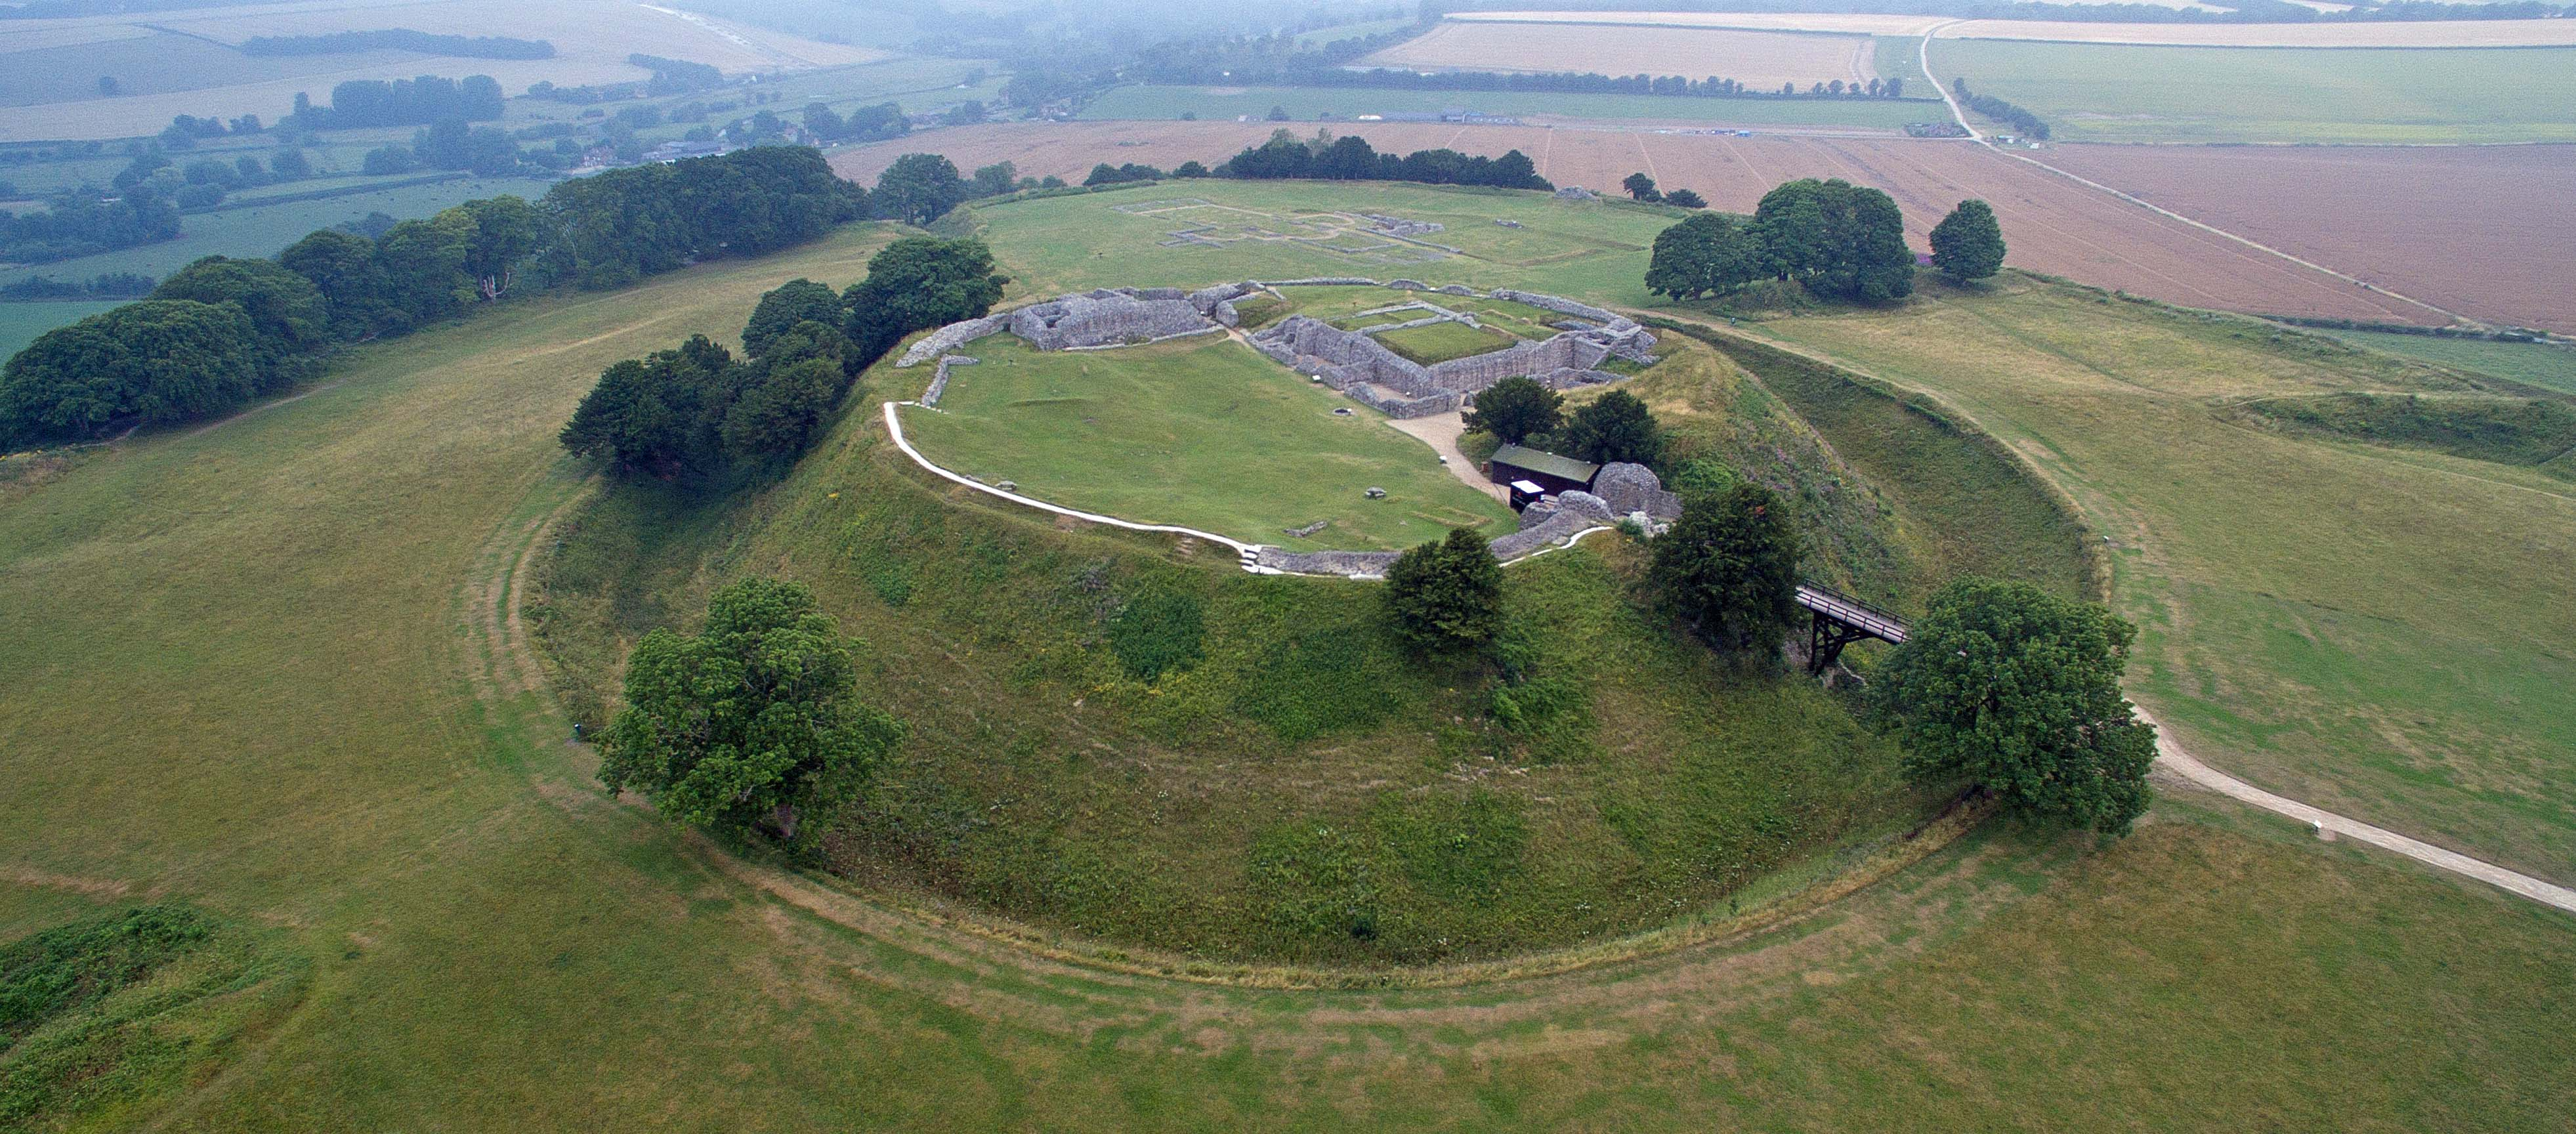 Old Sarum | South West | Castles, Forts and Battles